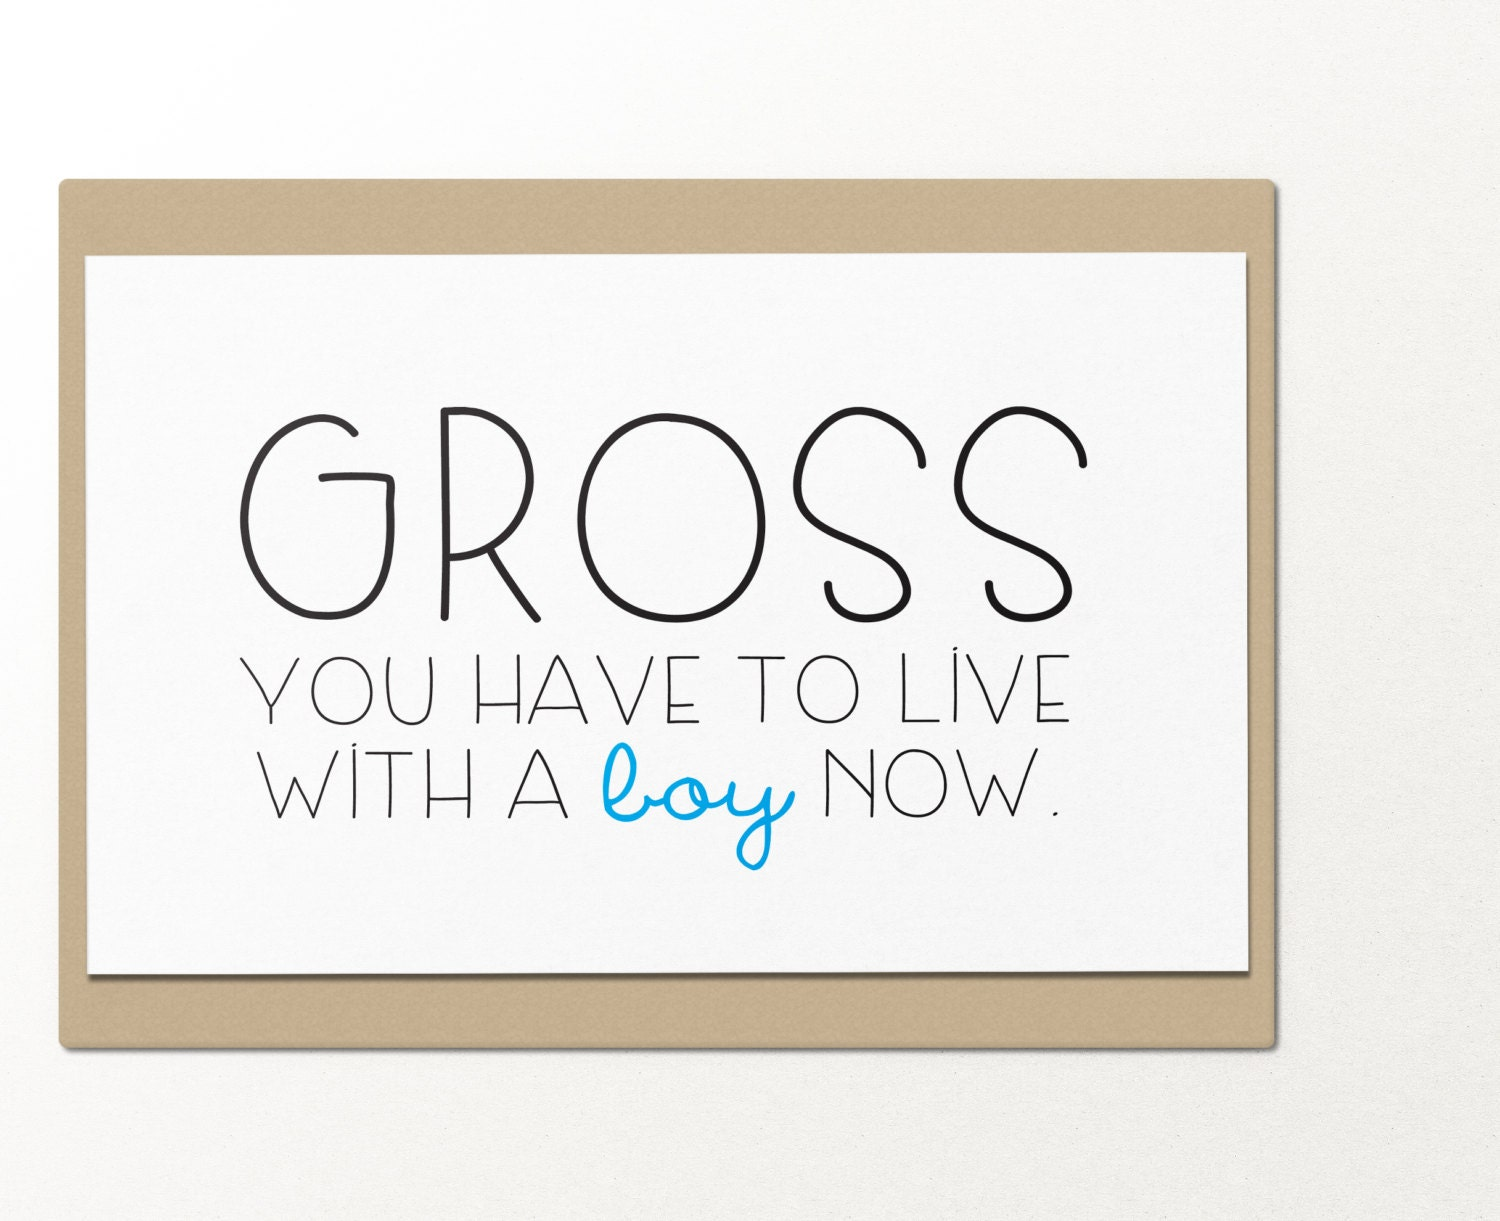 Gross You Have To Live With A Boy Now Funny Greeting Card